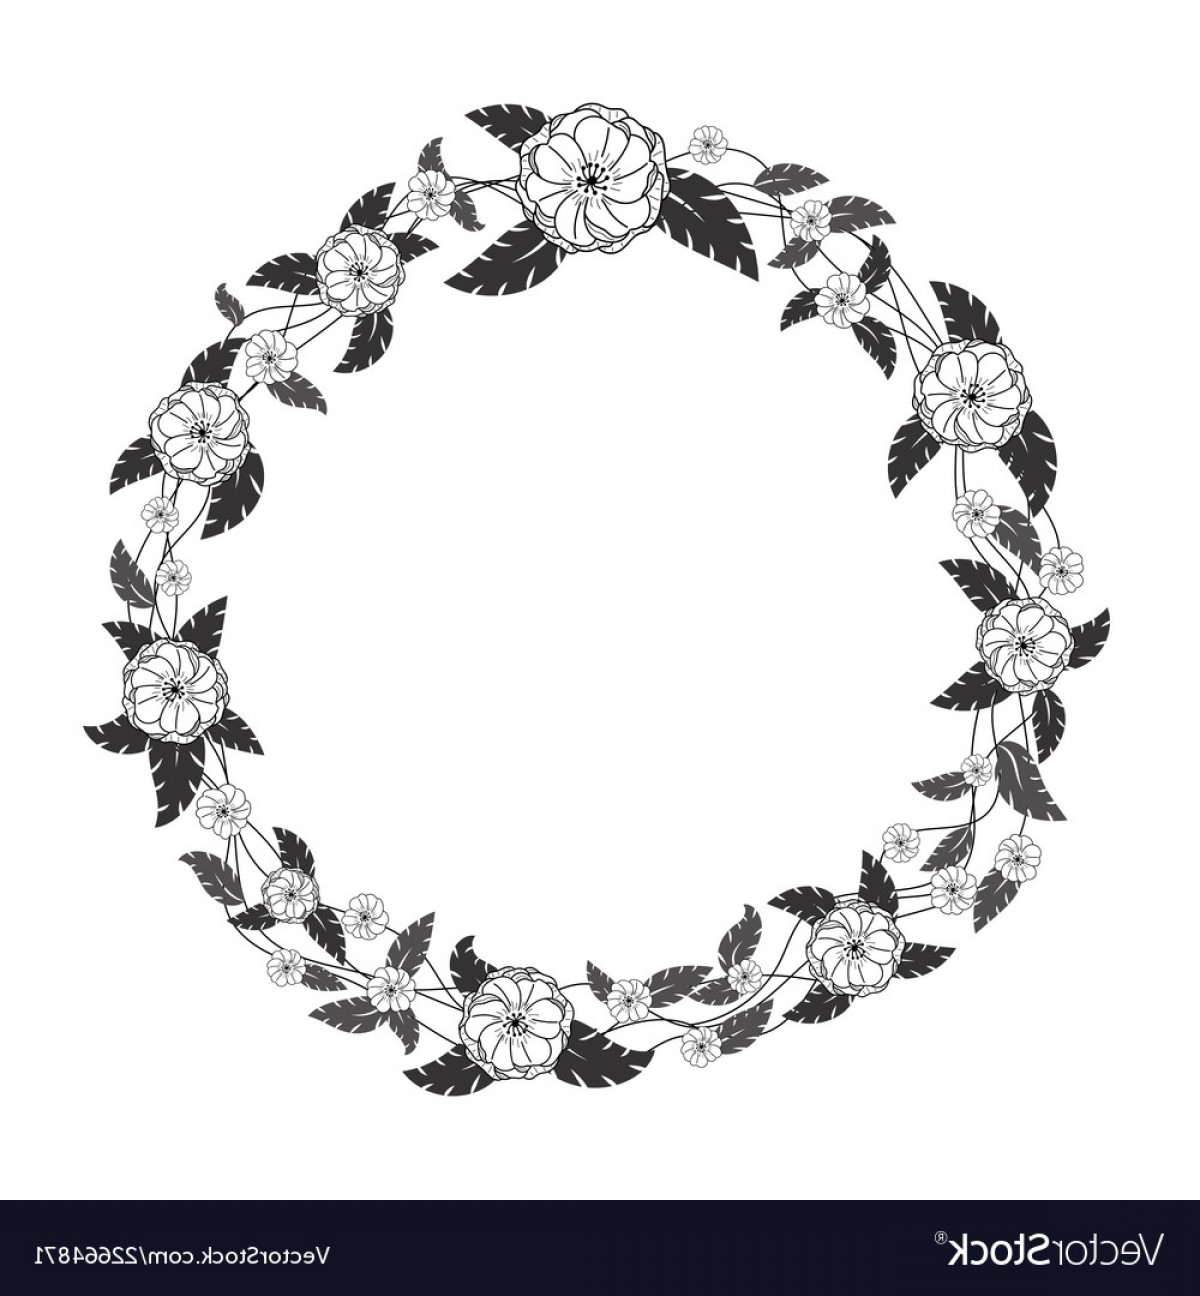 Vector Flower Wreaths In Black: Wreath With Black And White Flowers And Leaves Vector